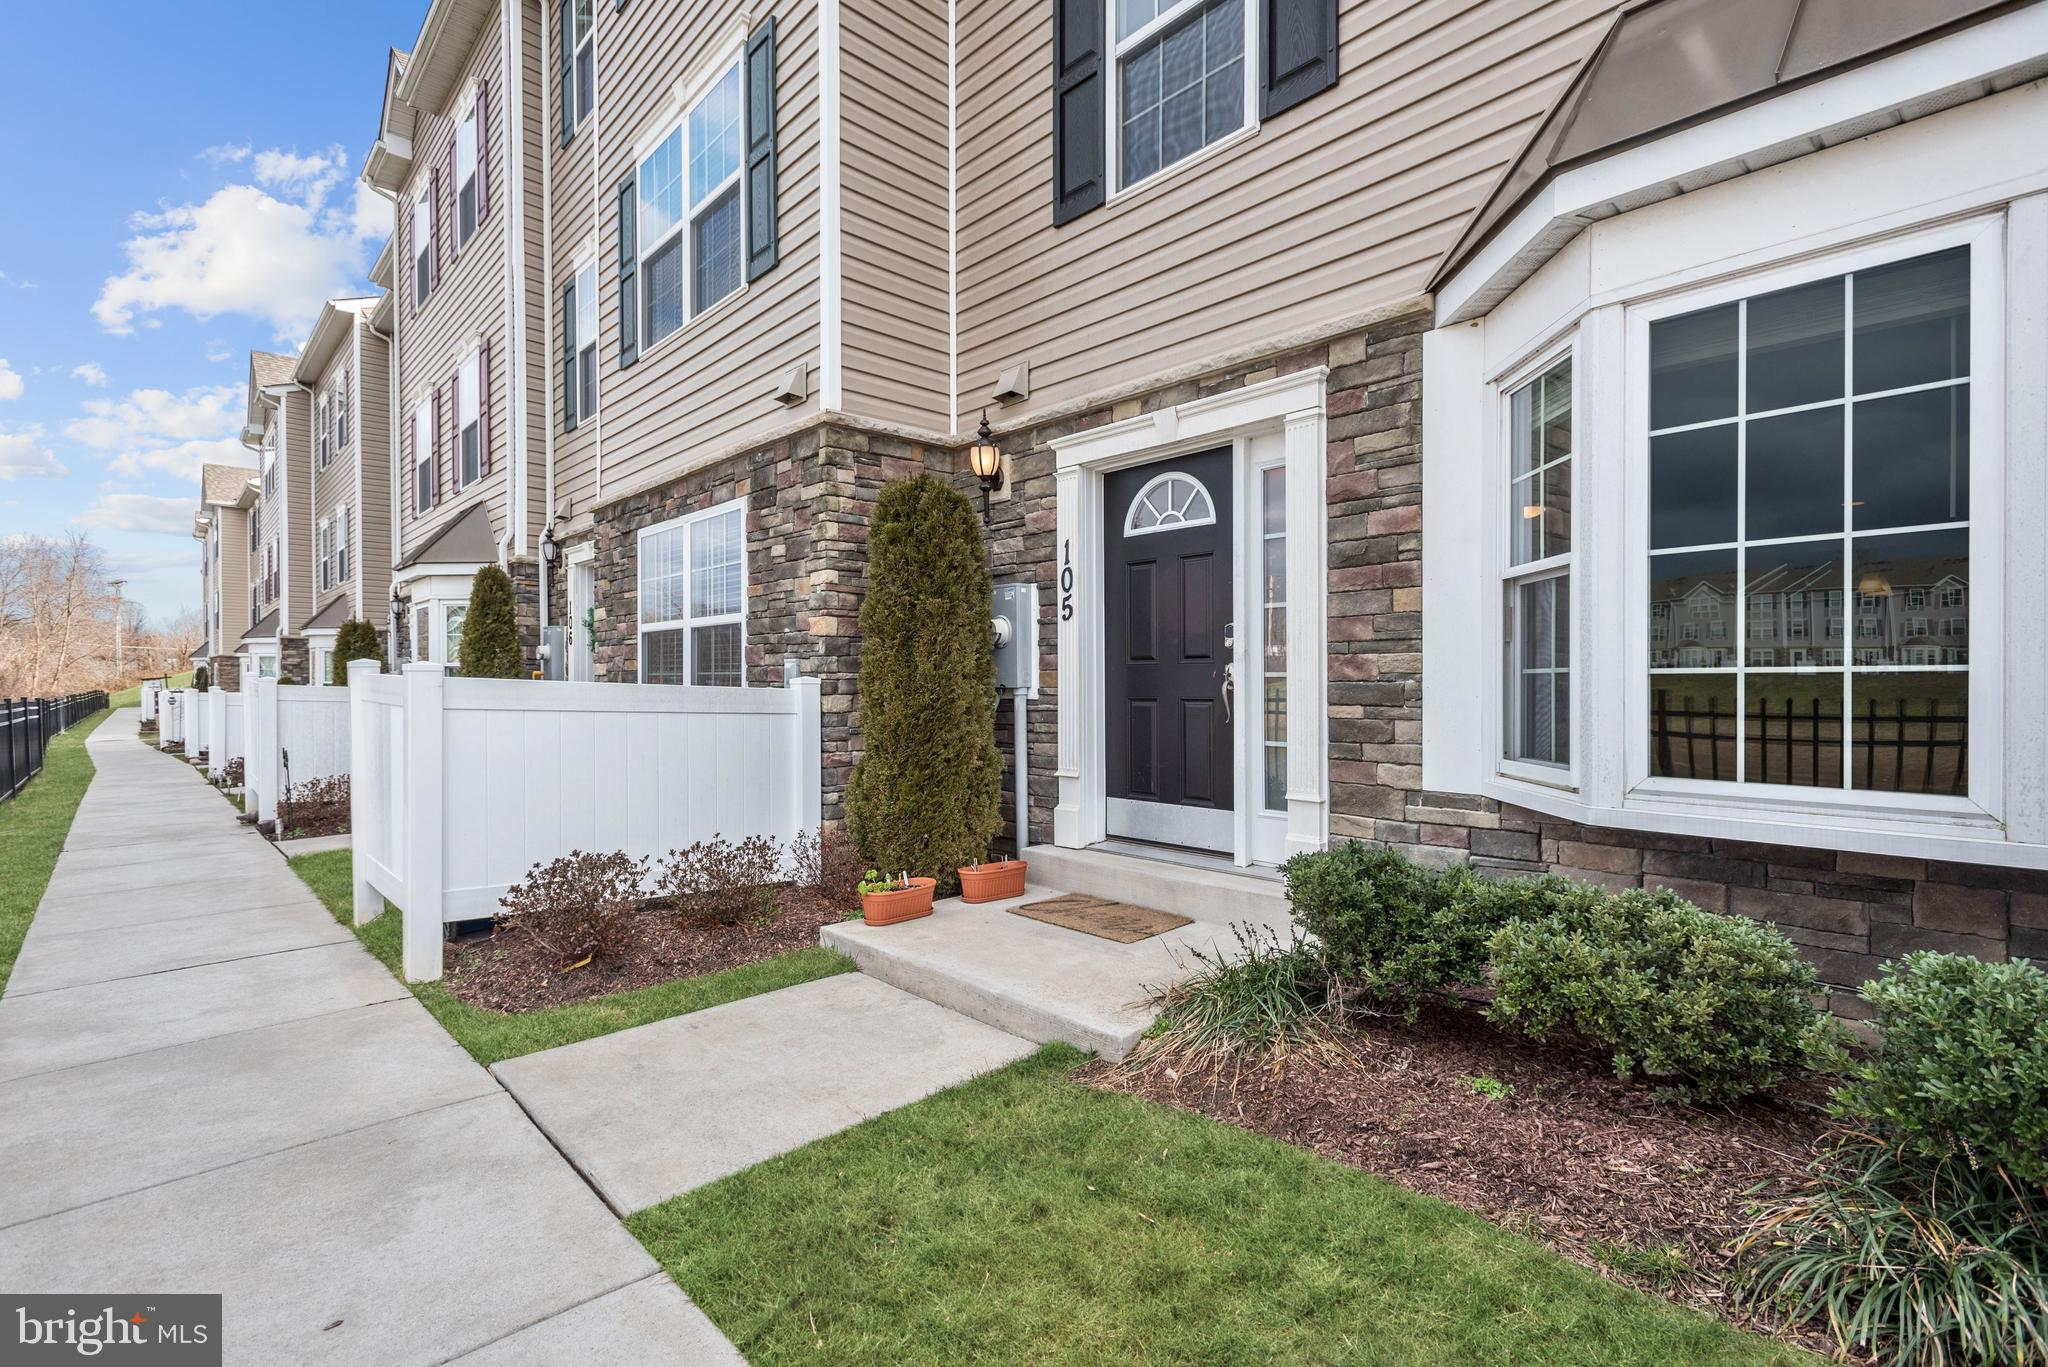 Lovely End-Unit Townhome in Reservoir Ridge with Incredible community Pond Views! This home features